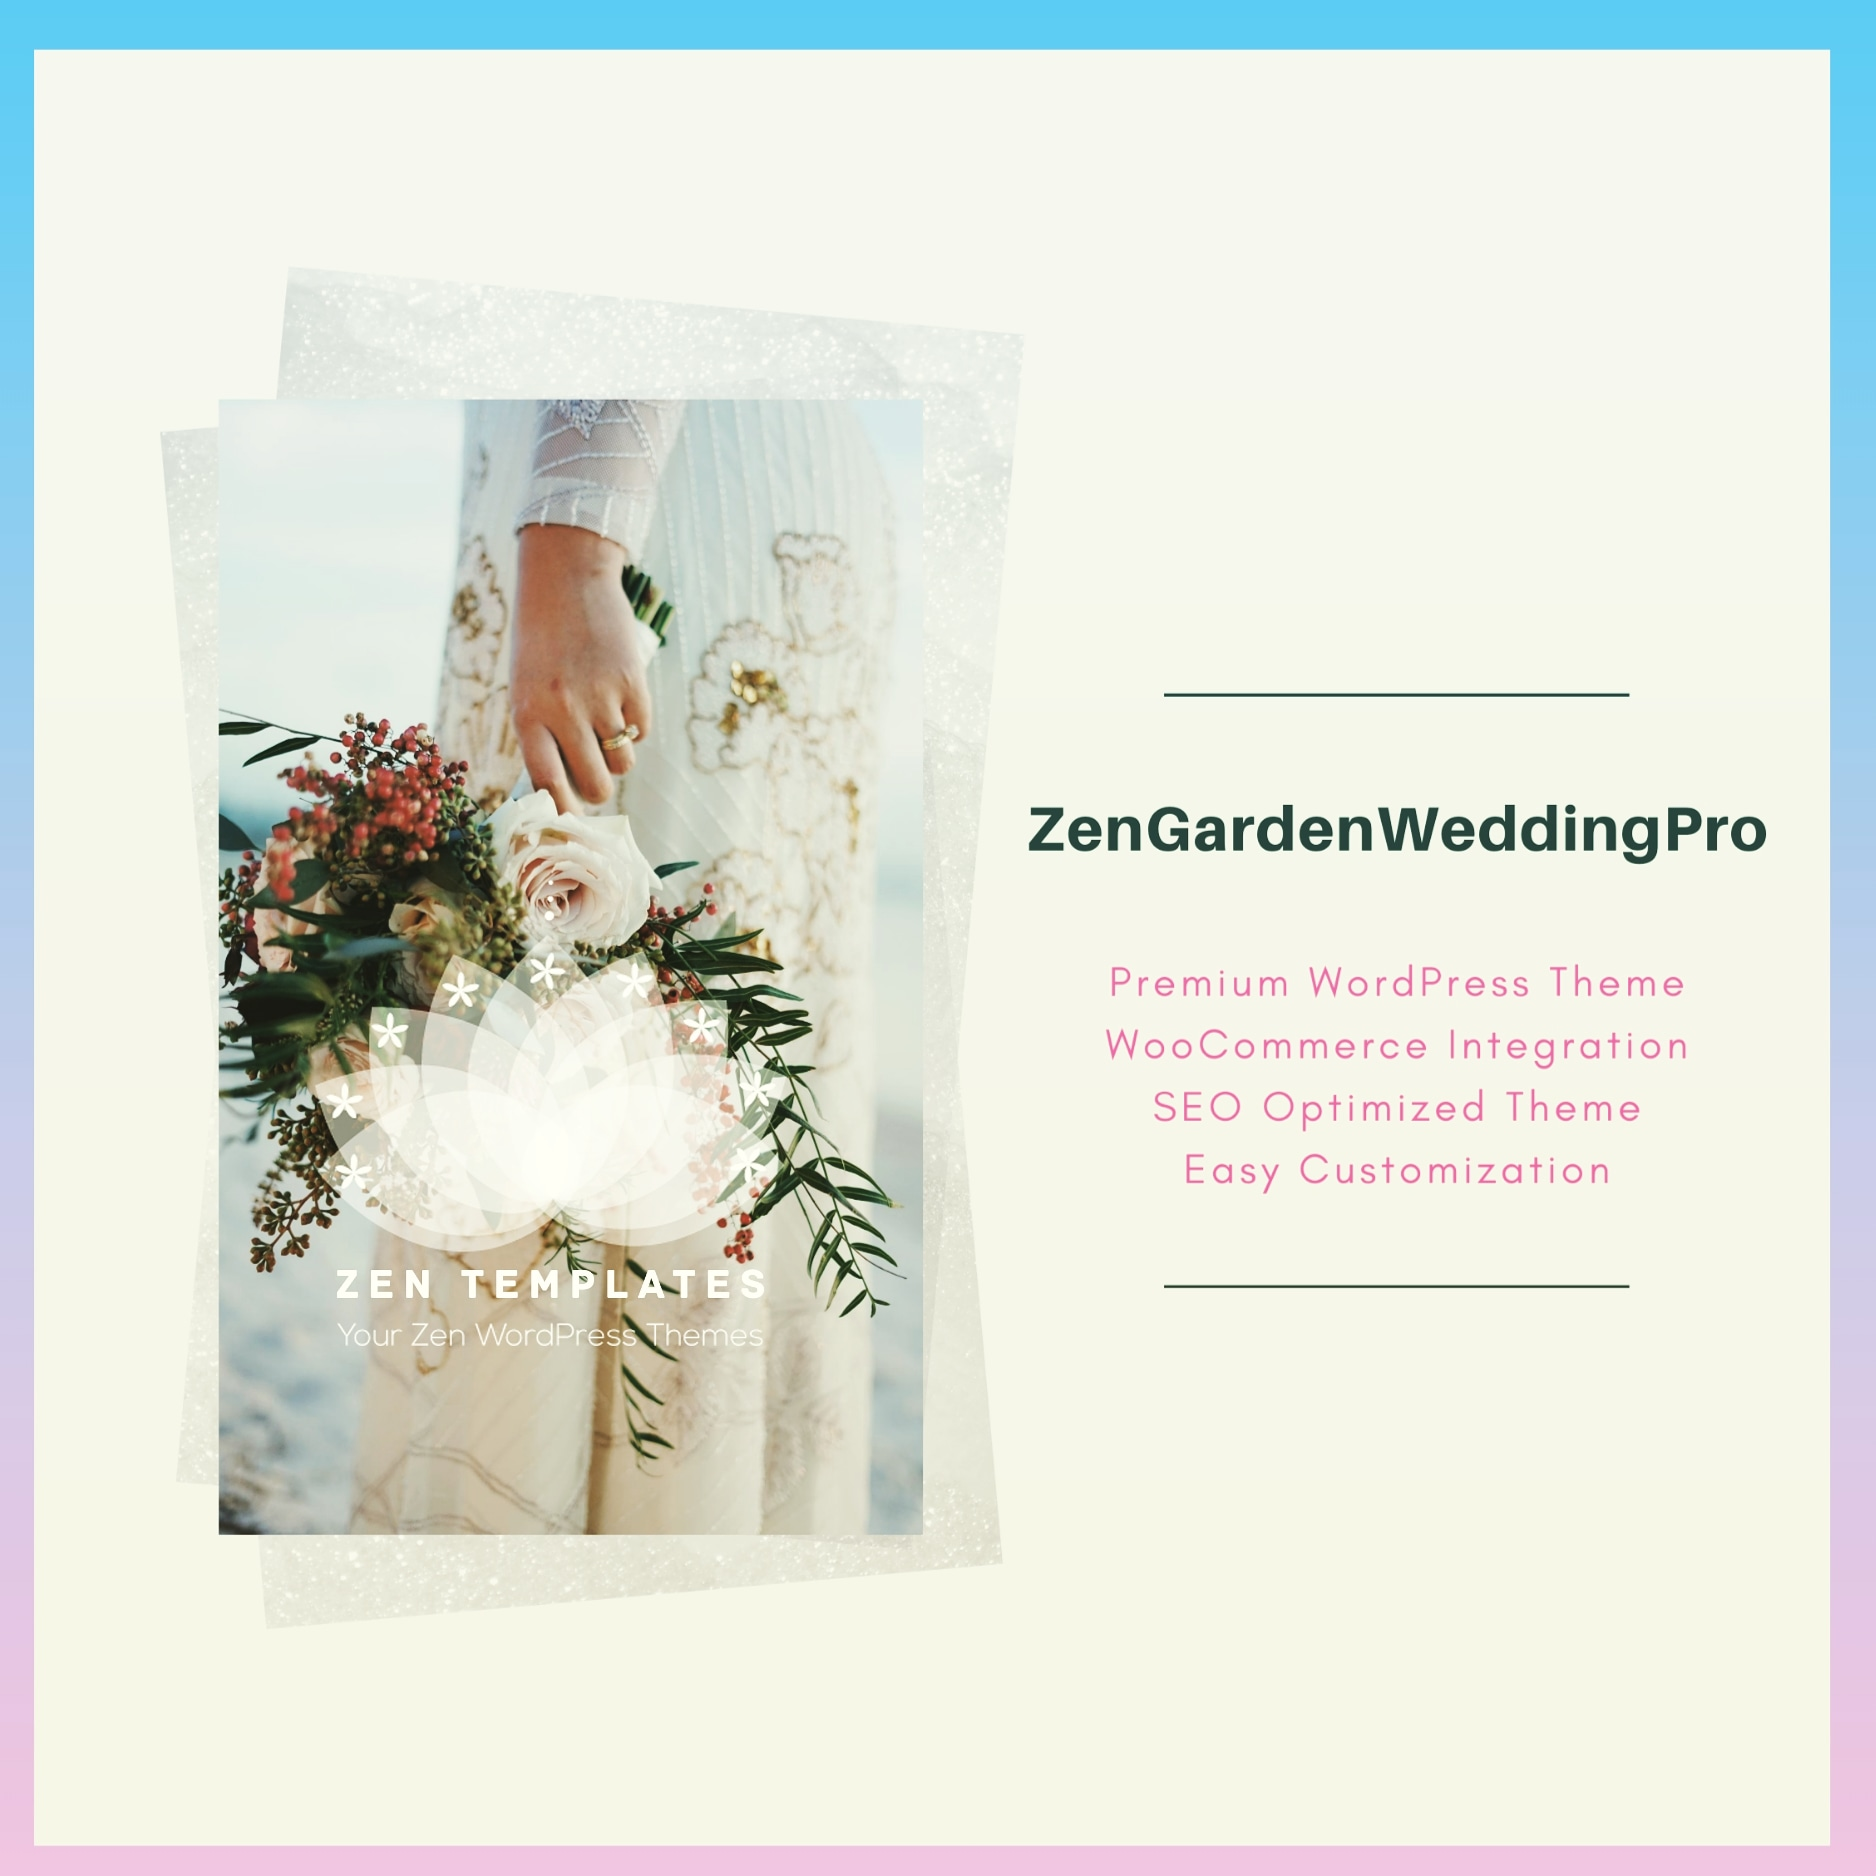 zengardenweddingpro - premium wordpress theme